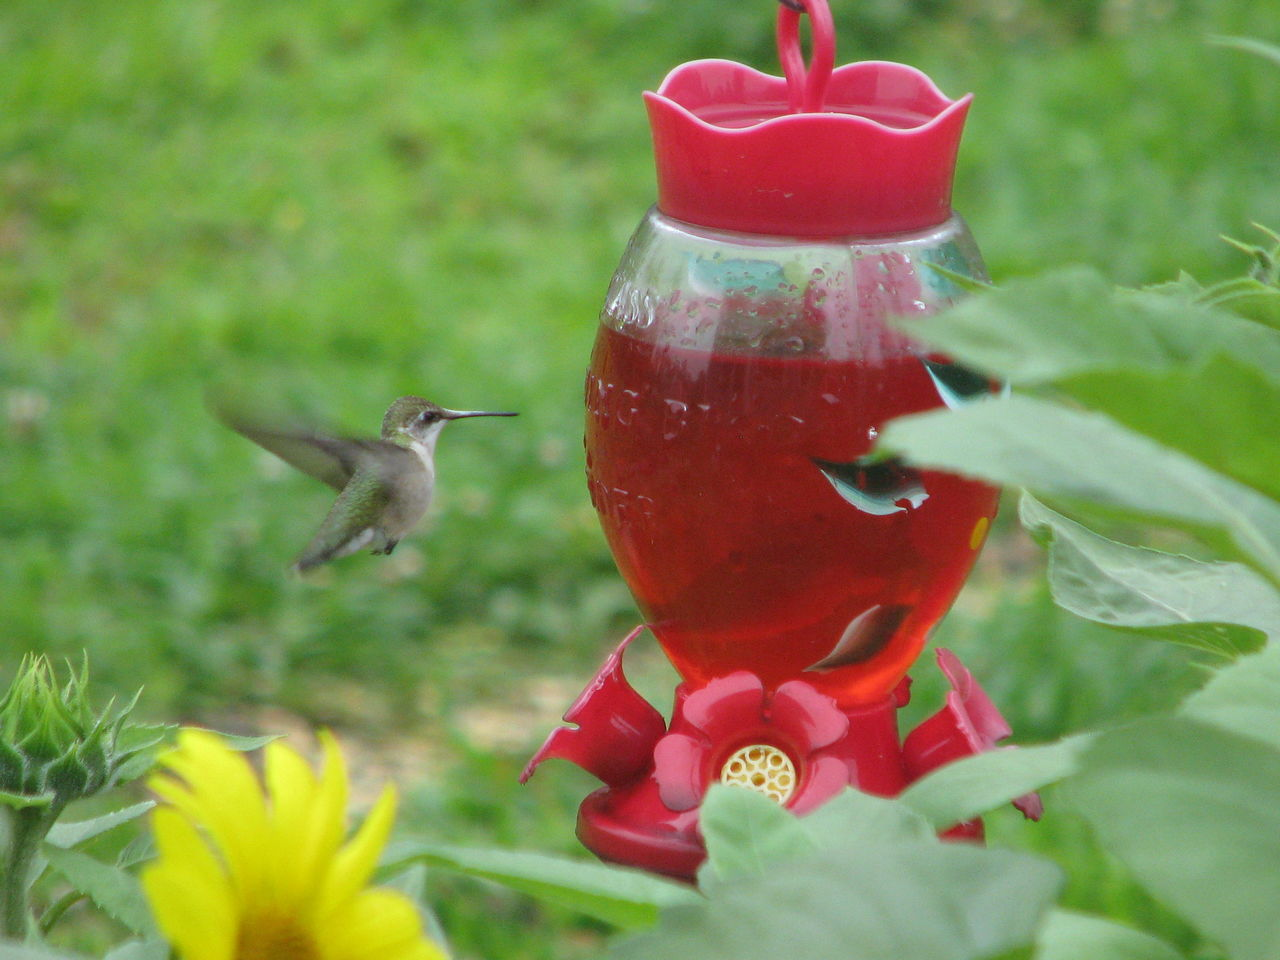 Animal Themes Animal Wildlife Animals In The Wild Bird Bird Feeder Close-up Day Flower Hummingbird Hummingbird Feeder Hummingbird In Flight Hummingbirds Nature No People One Animal Outdoors Red Tree